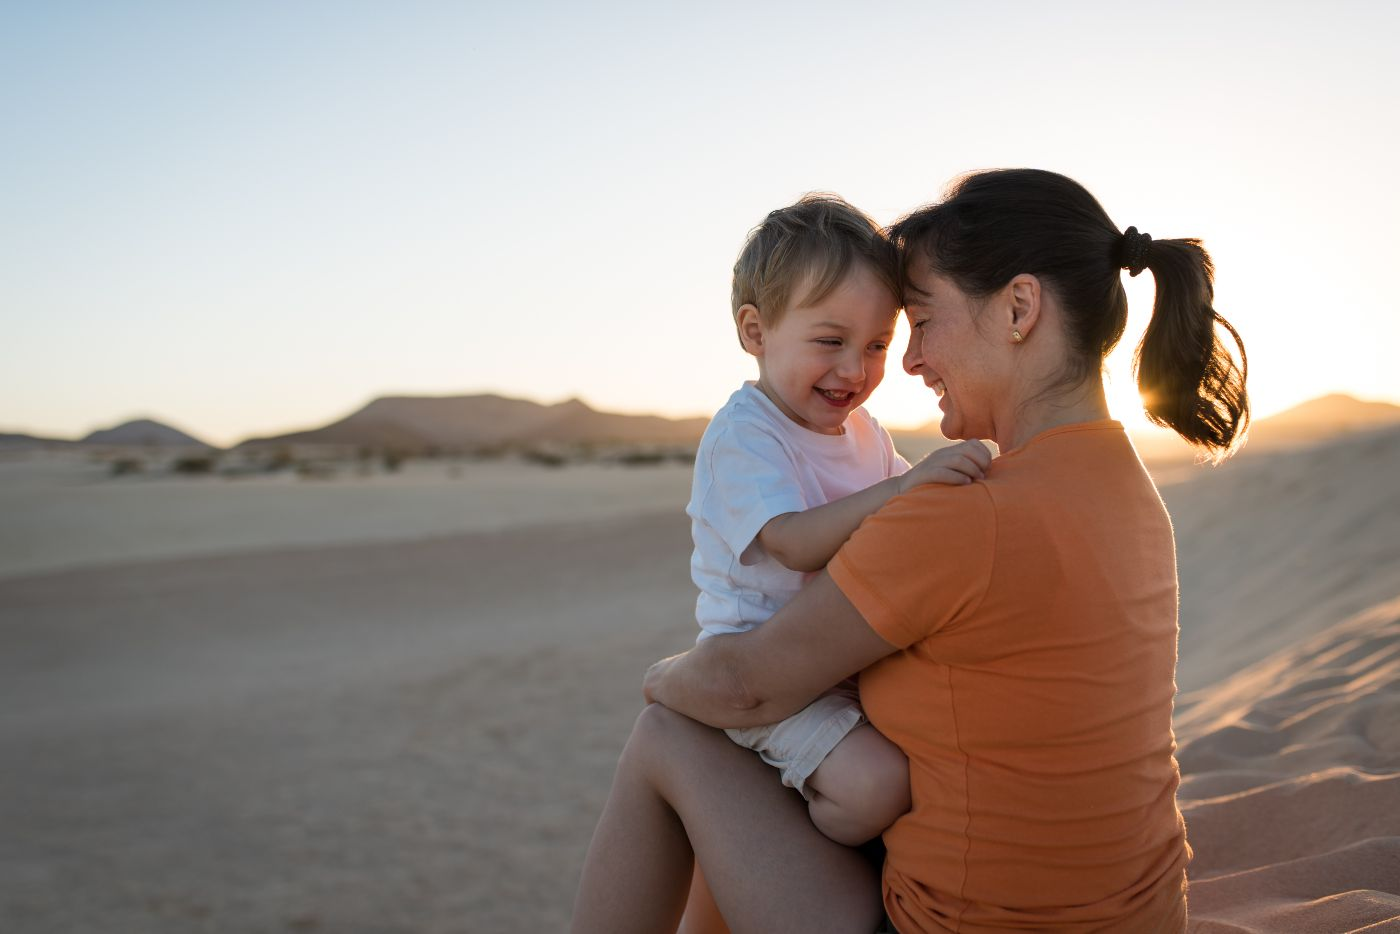 Mom and son playing in desert sand around sunset